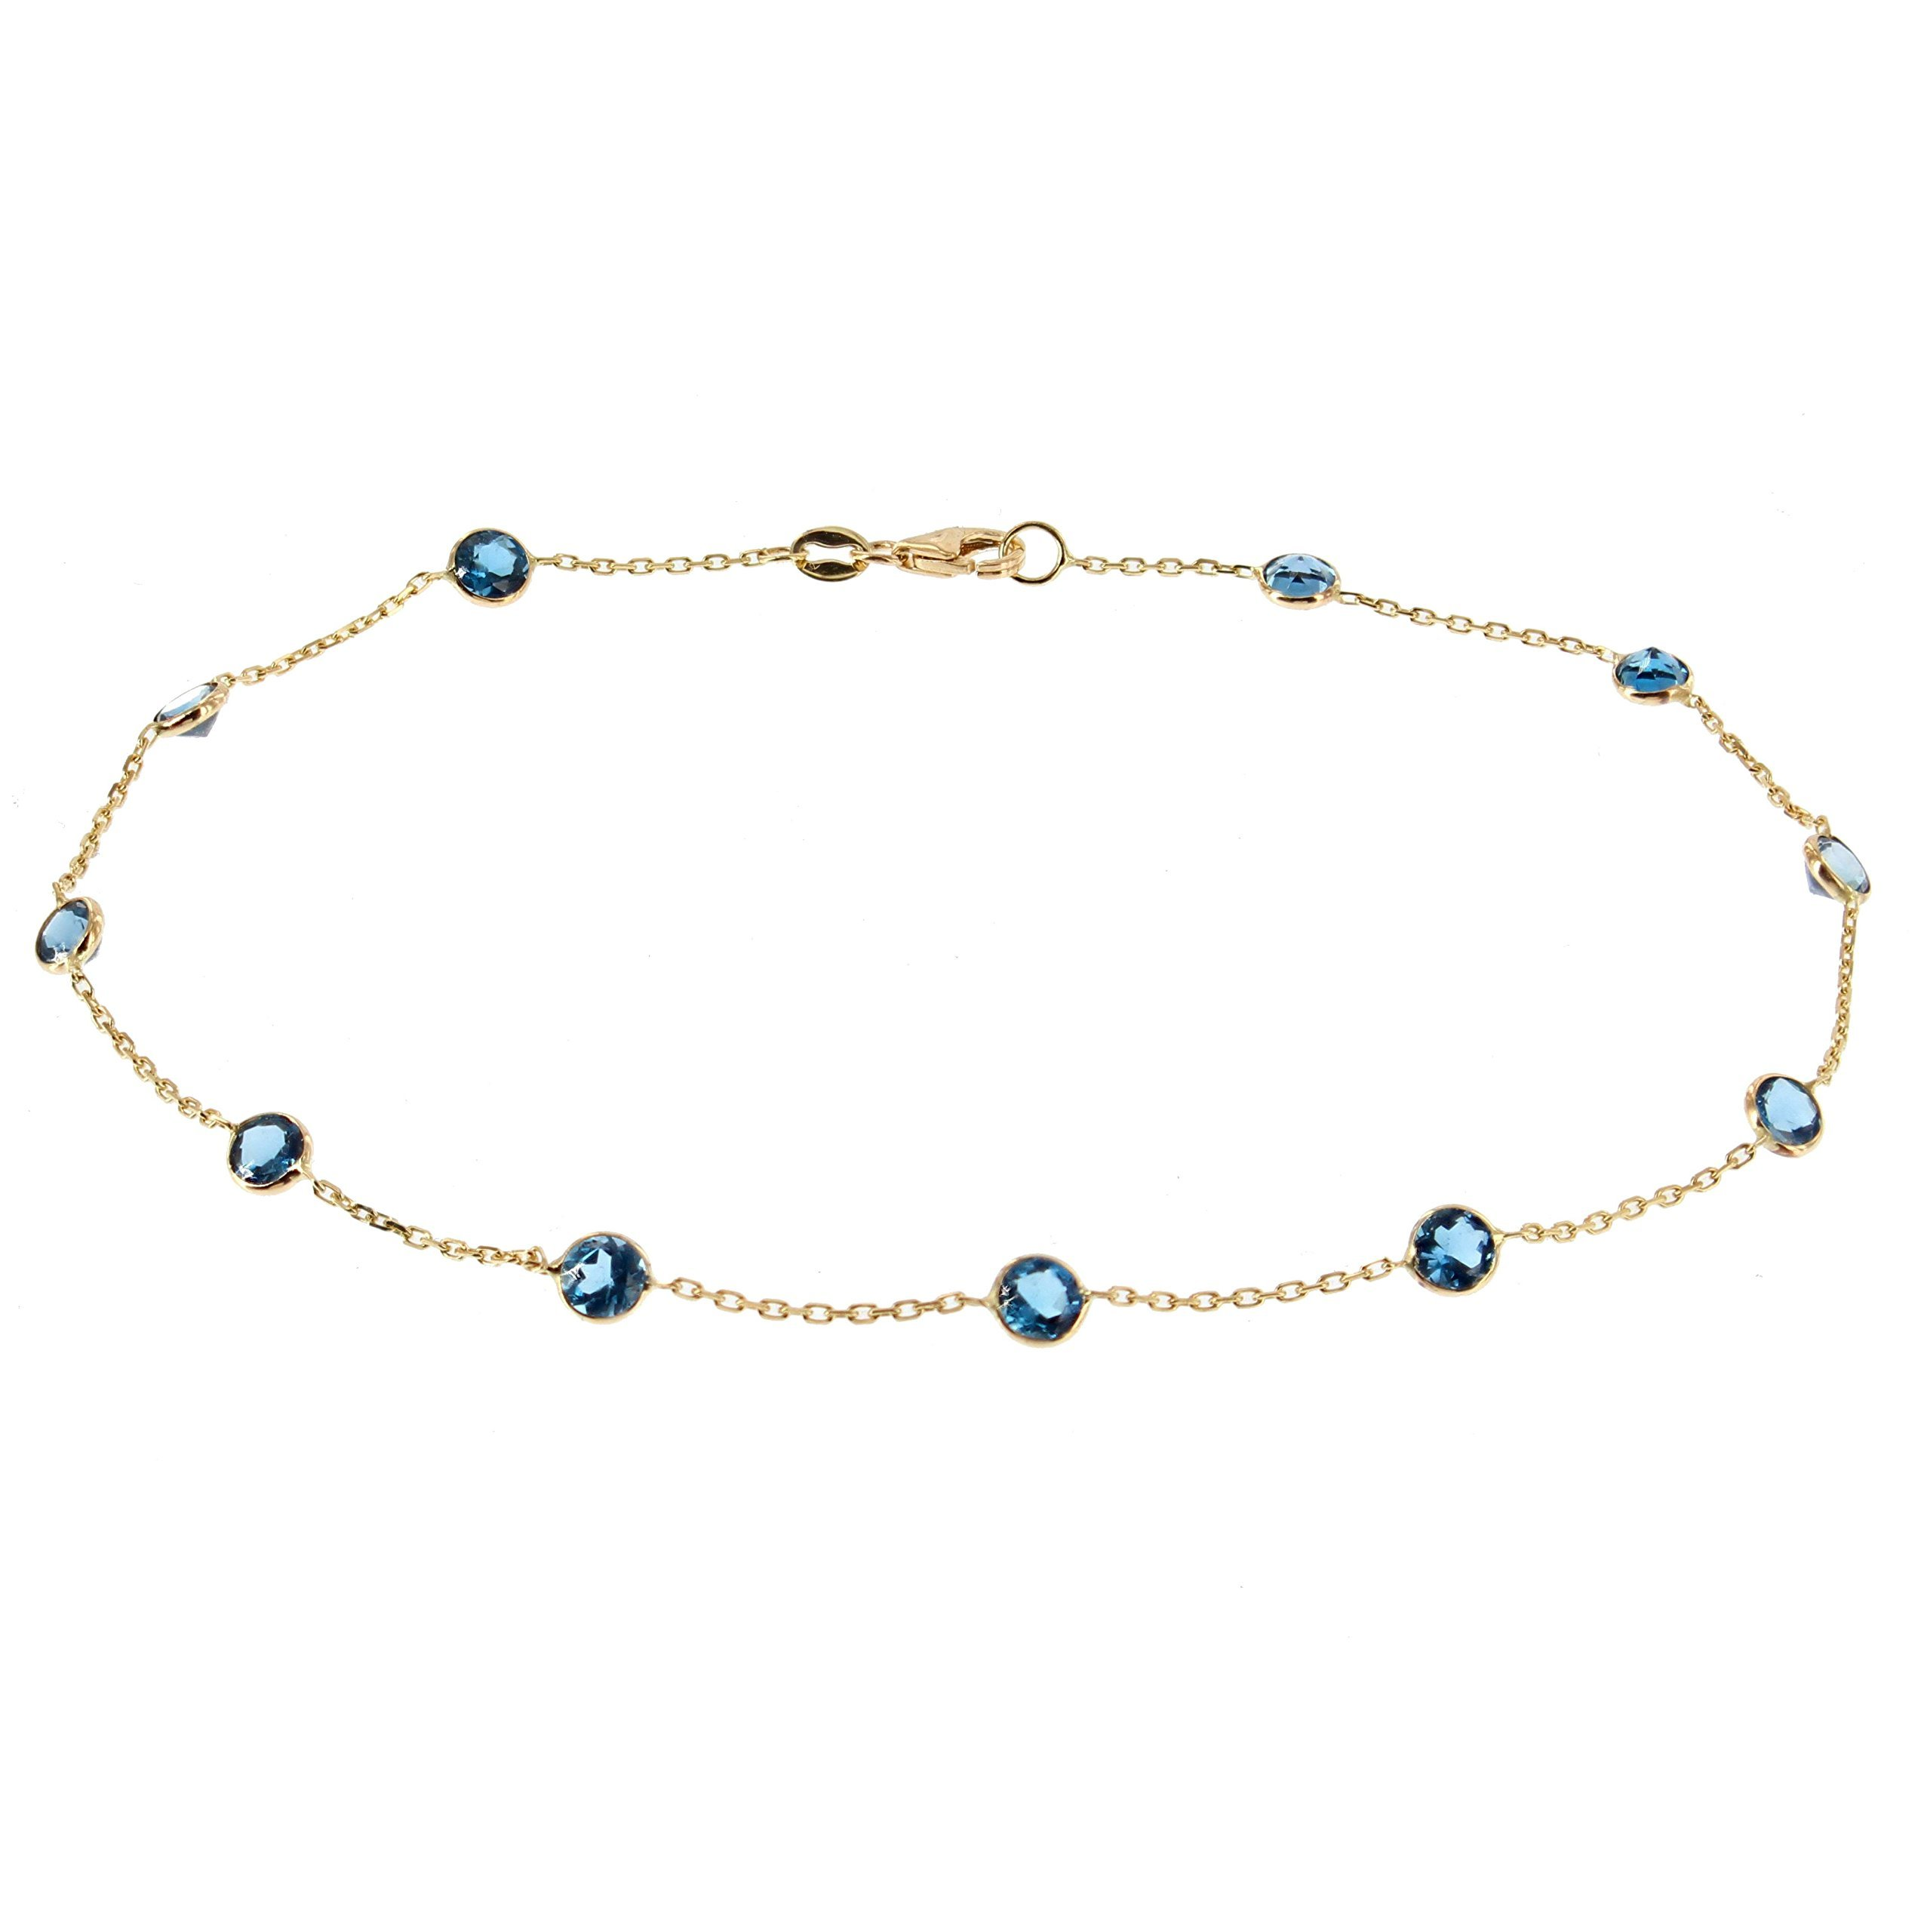 14k Yellow Gold Handmade Station Anklet With London Blue Topaz Gemstones 9 - 11 Inches by amazinite